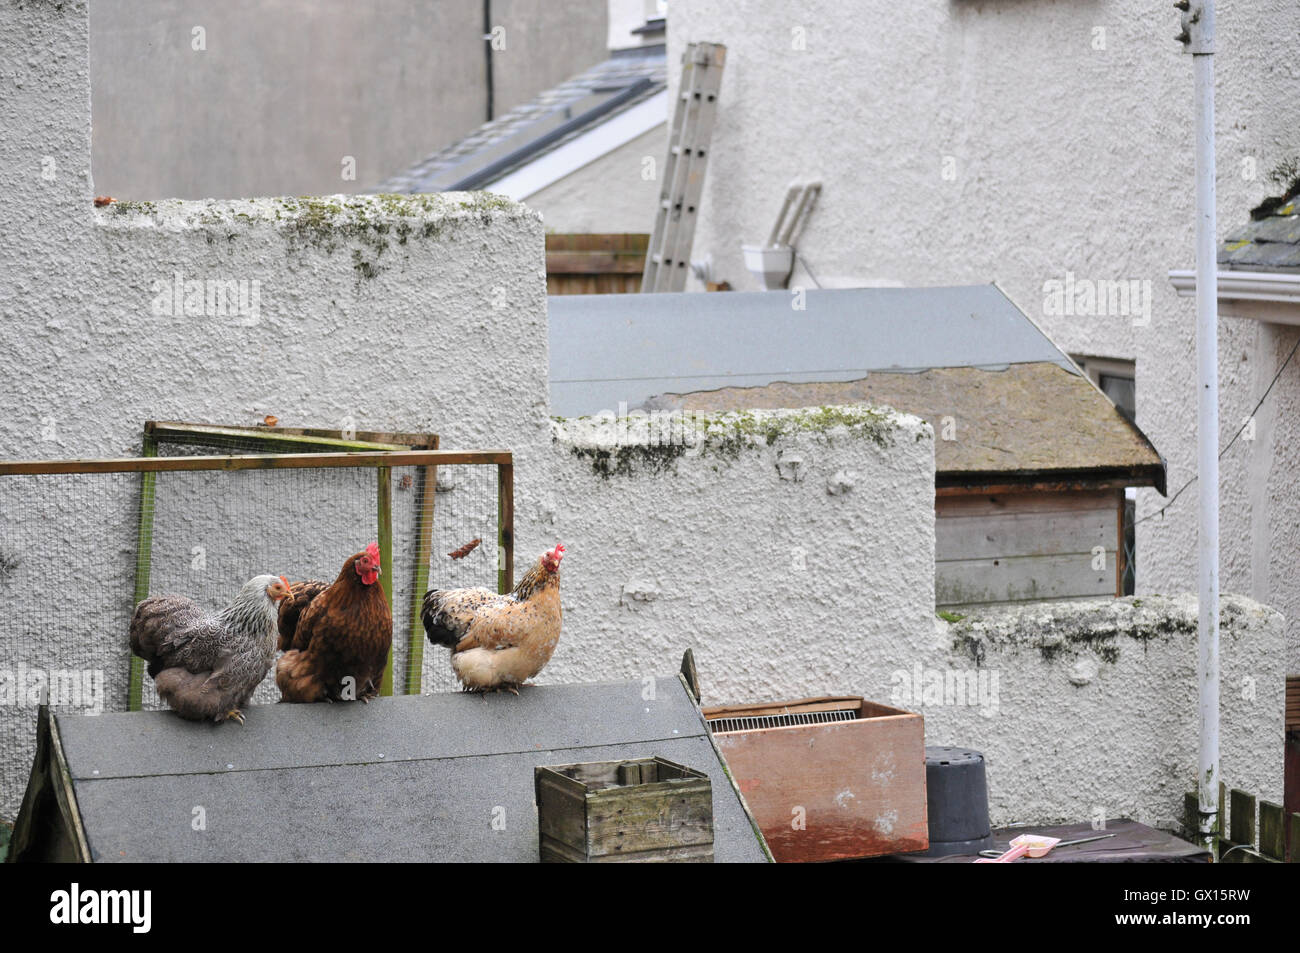 Chickens kept in the back garden of a house in Falmouth, Cornwall - Stock Image